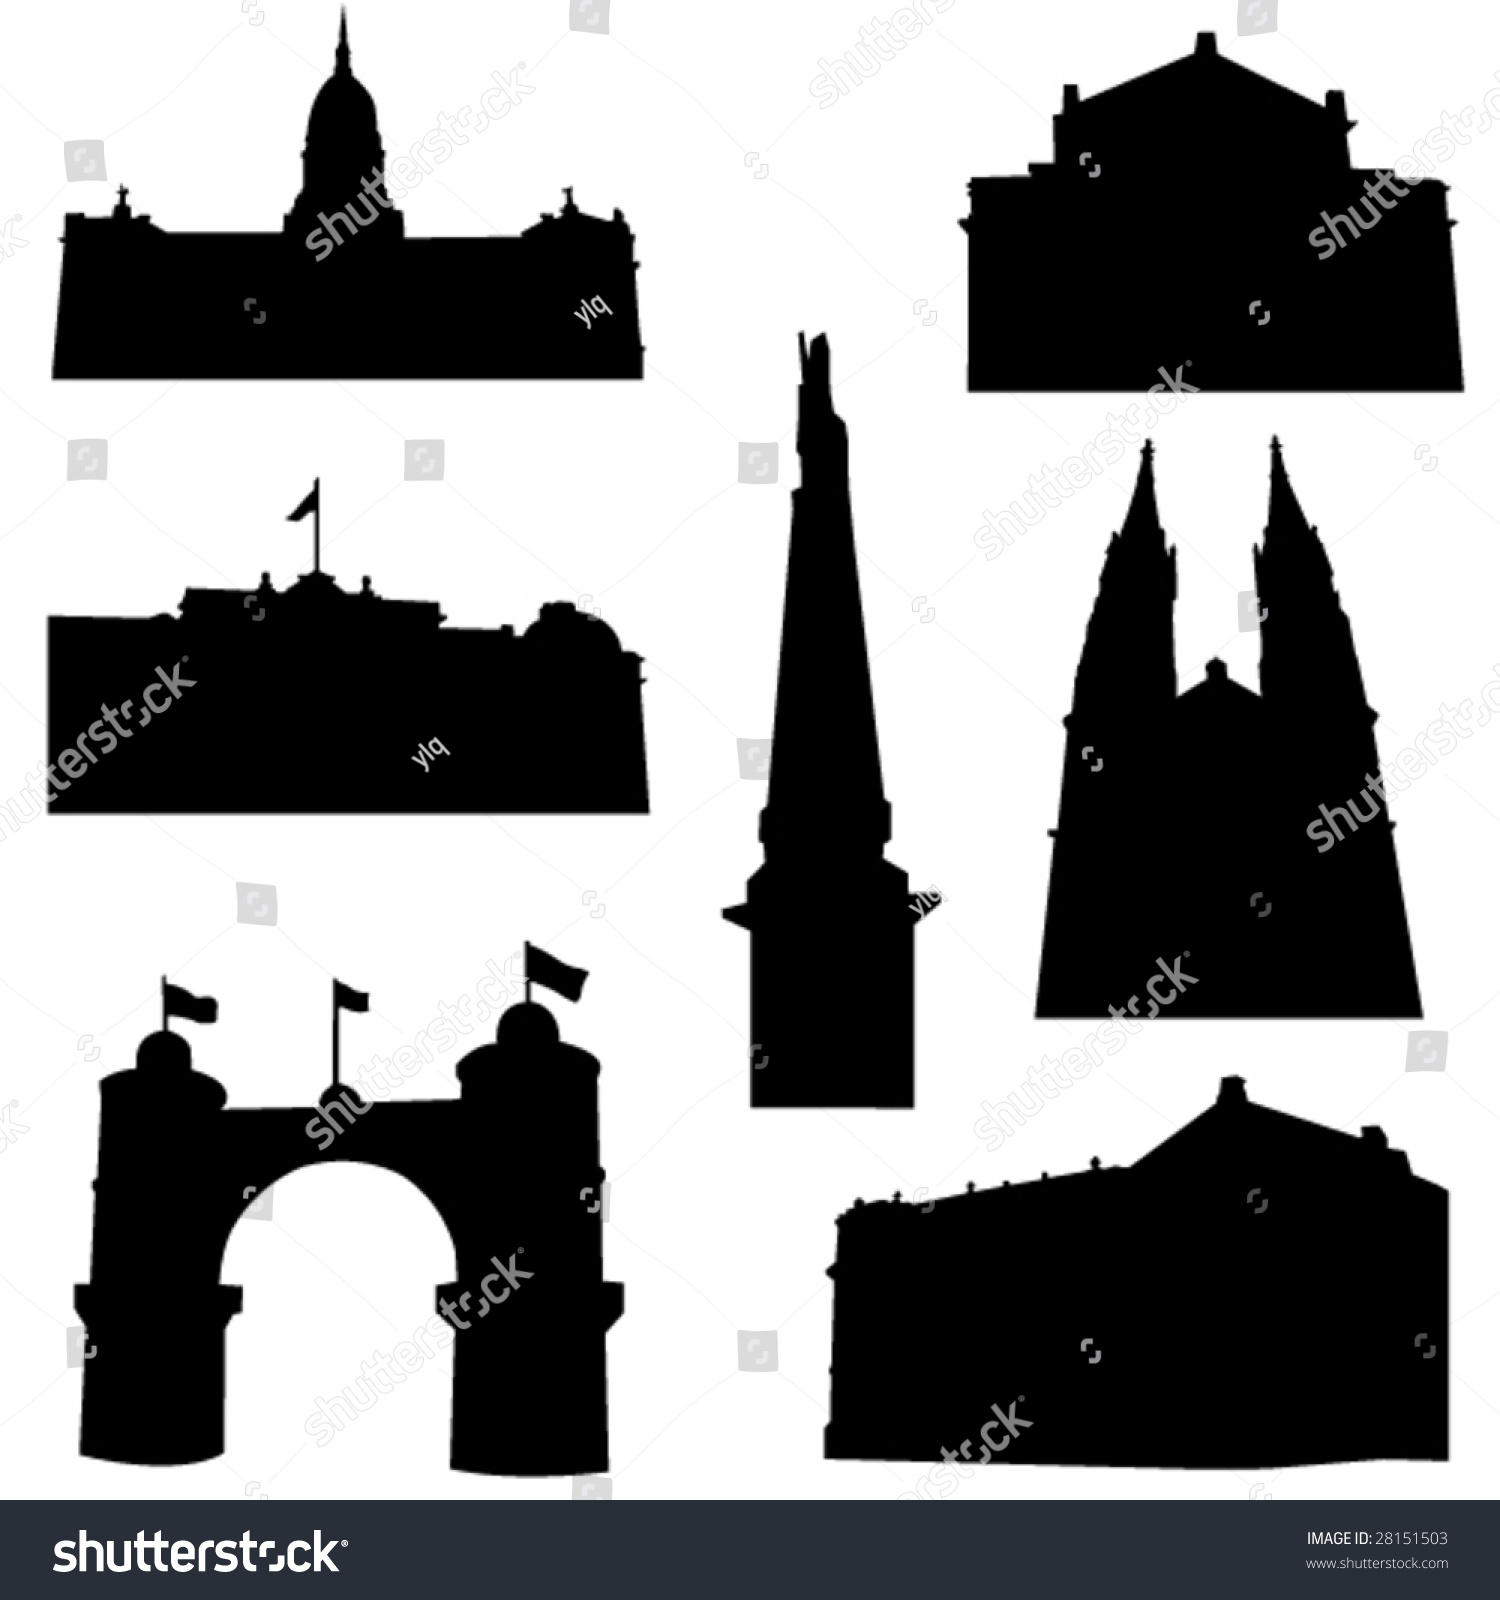 well known argentina architecture stock vector